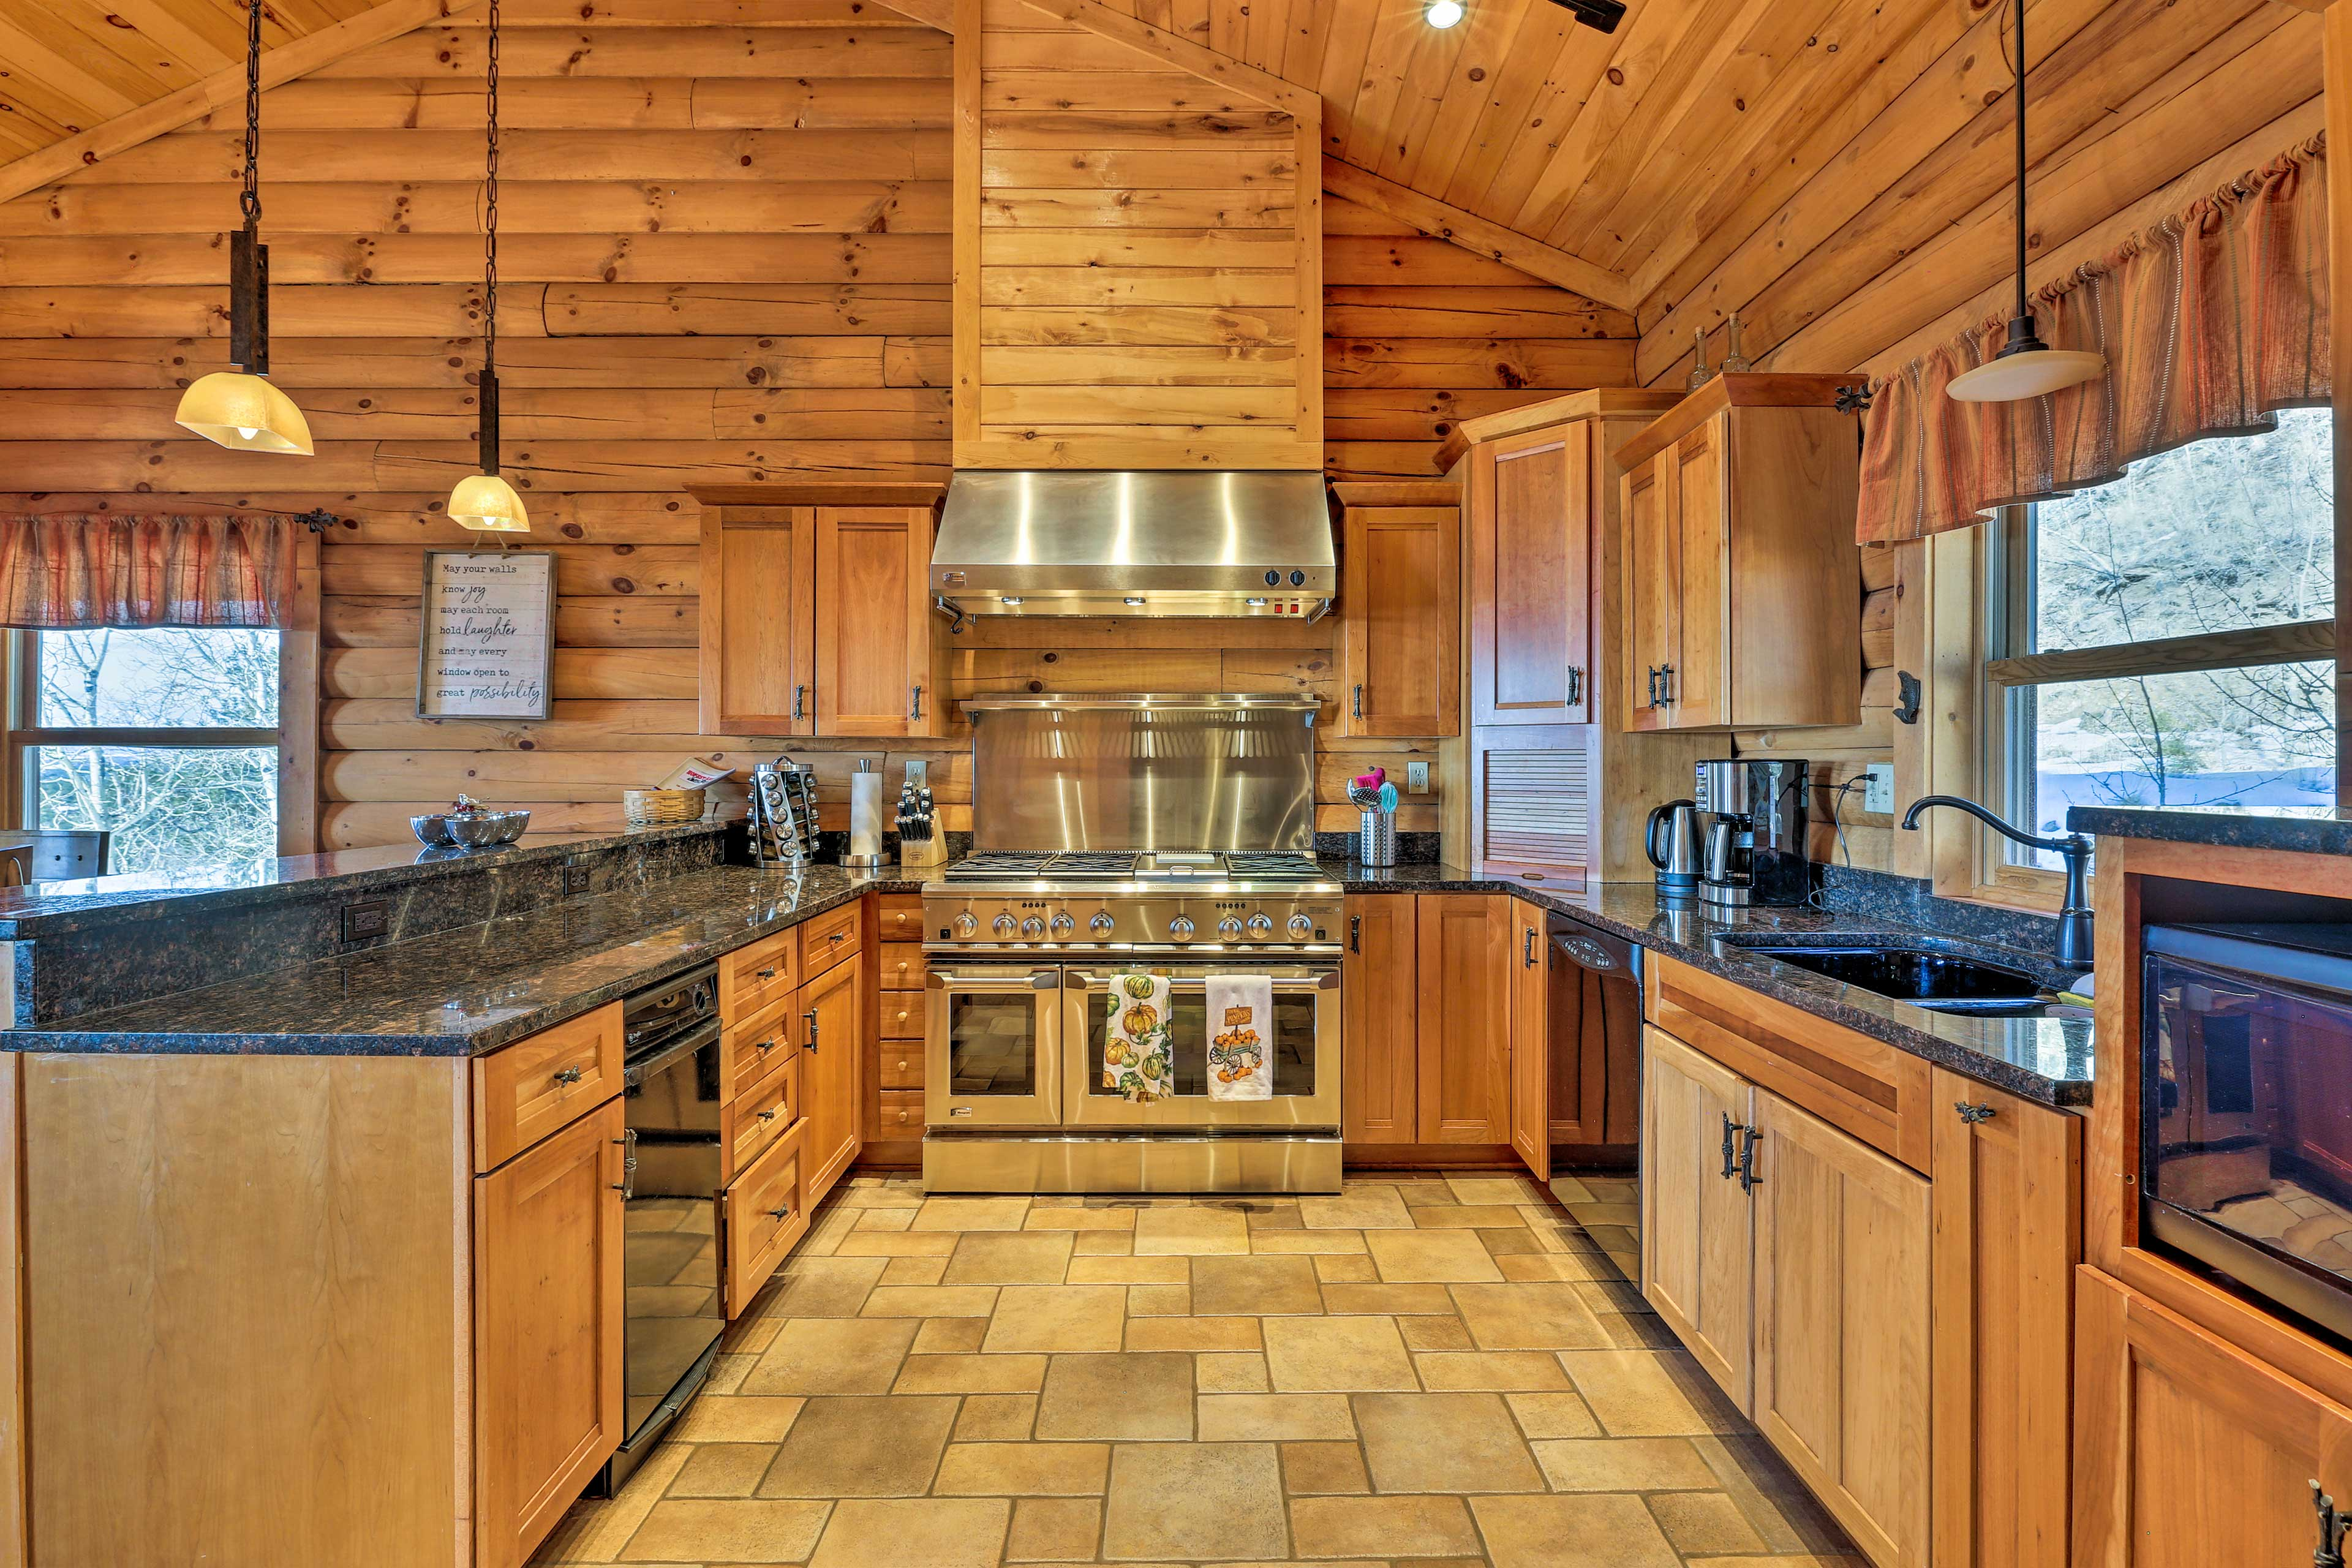 The fully equipped kitchen makes it easy to prepare your favorite meals.